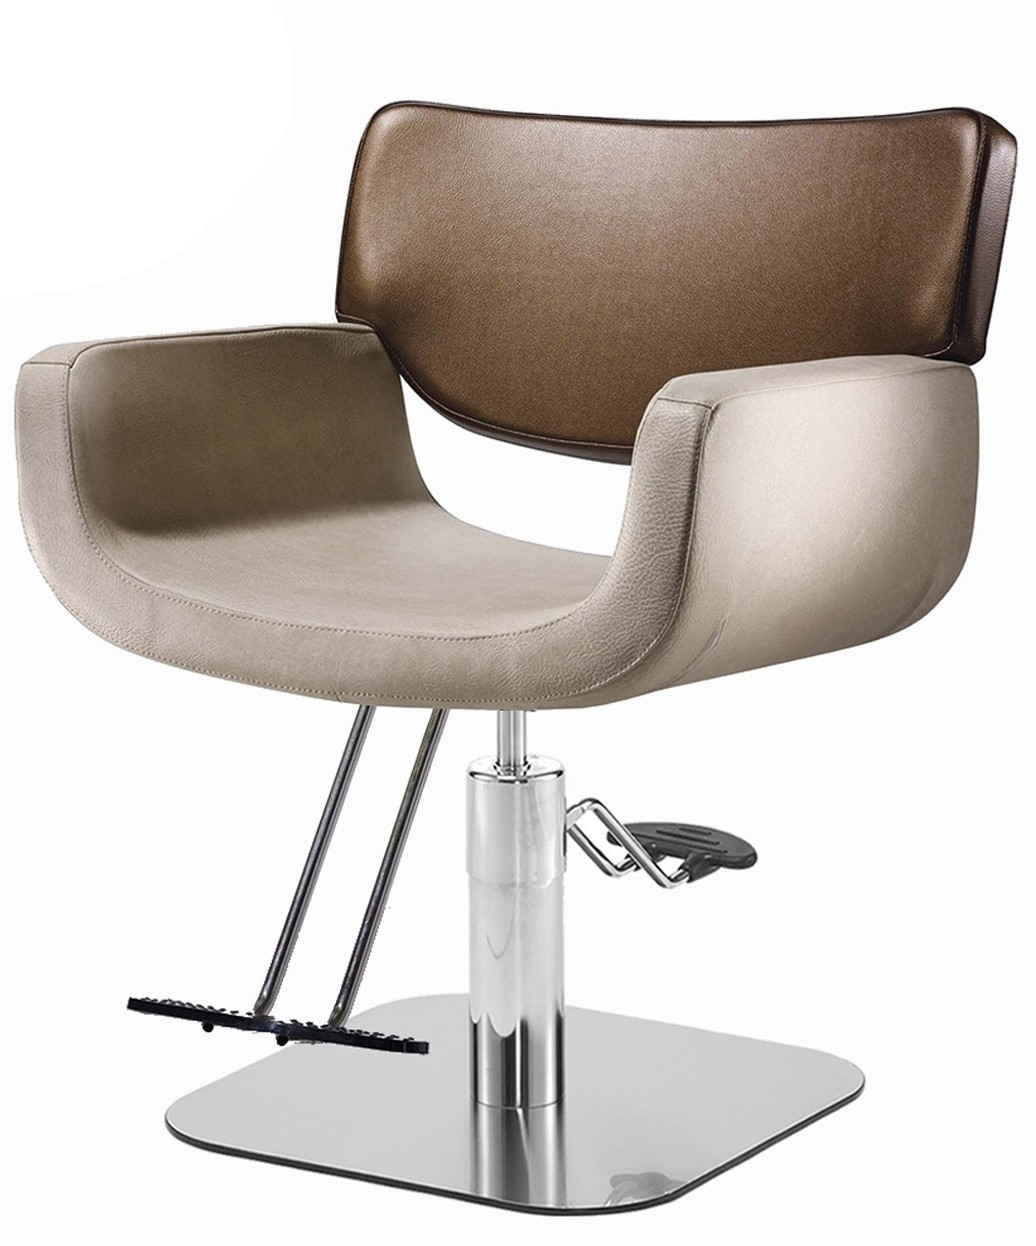 SH-790 Quadro Styling Chair